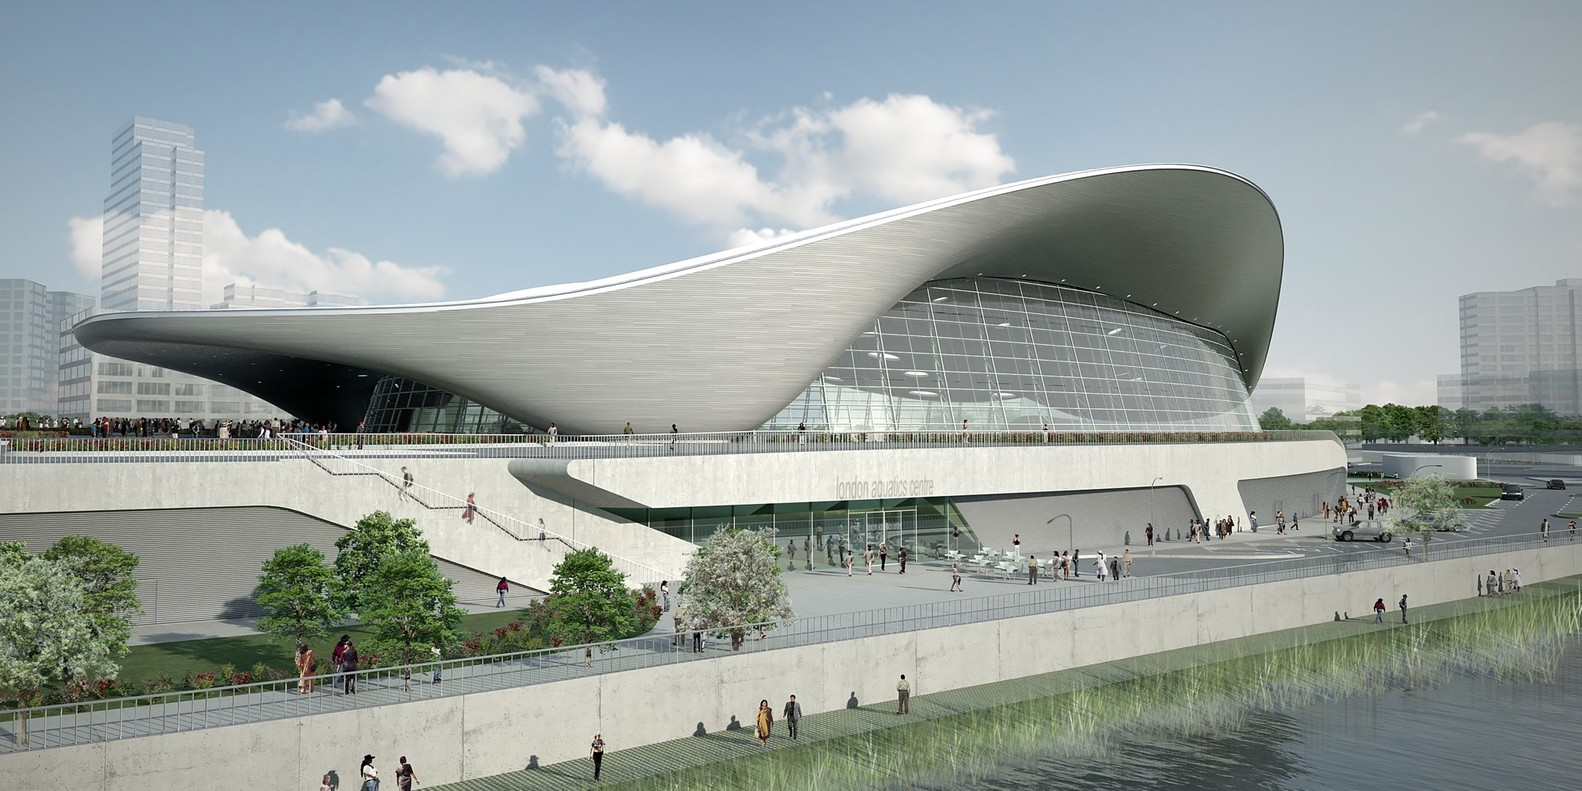 30 Projects That Define Zaha Hadid's Style - London Aquatics Centre for the 2012 Summer Olympics, UK